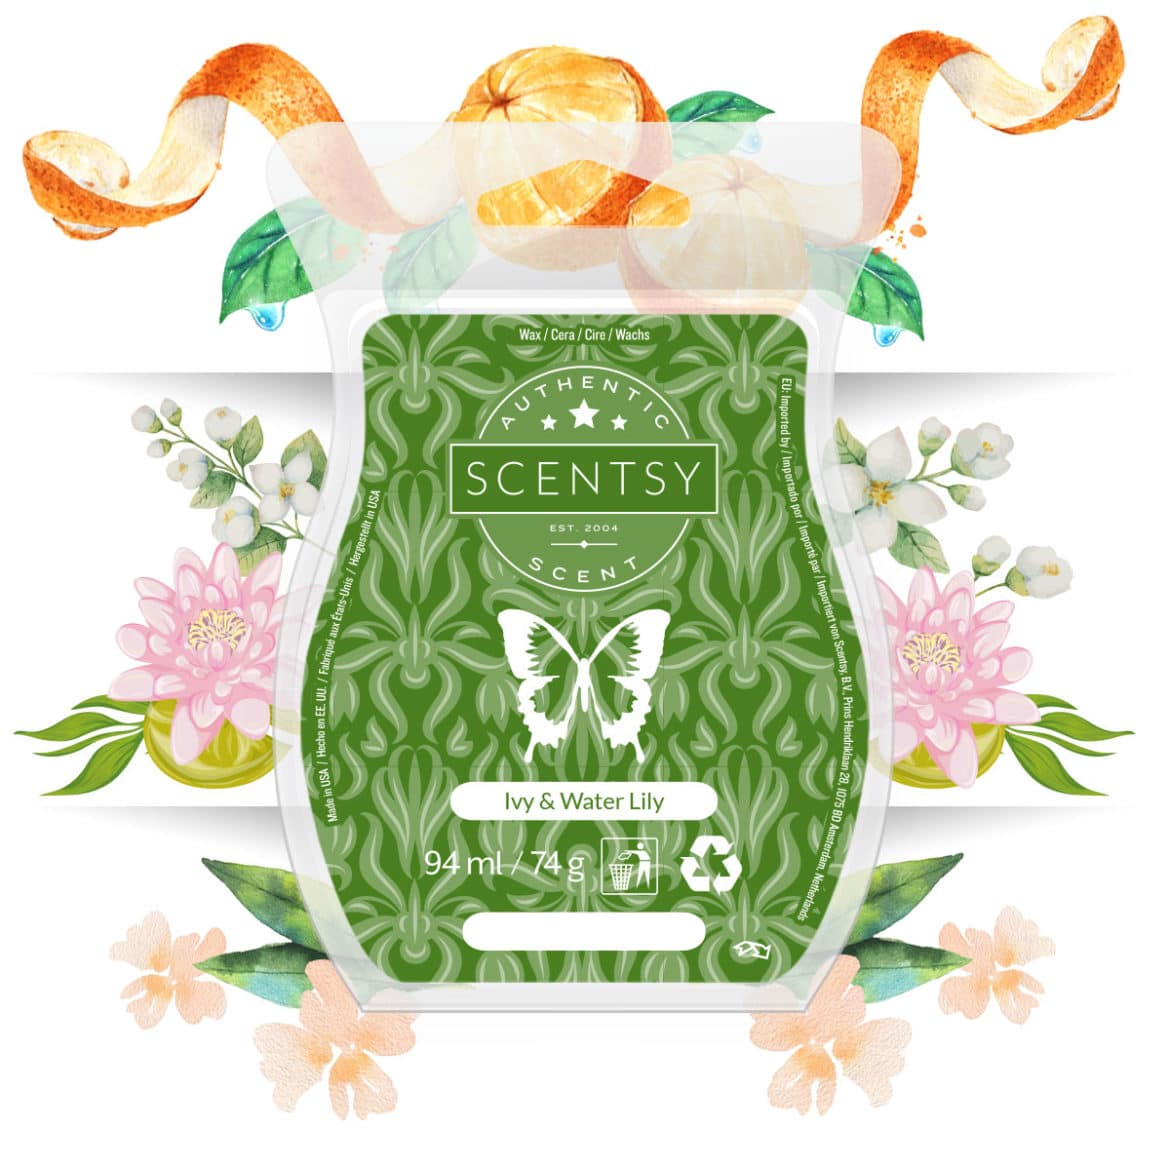 Ivy & Water Lily September Scent of the Month